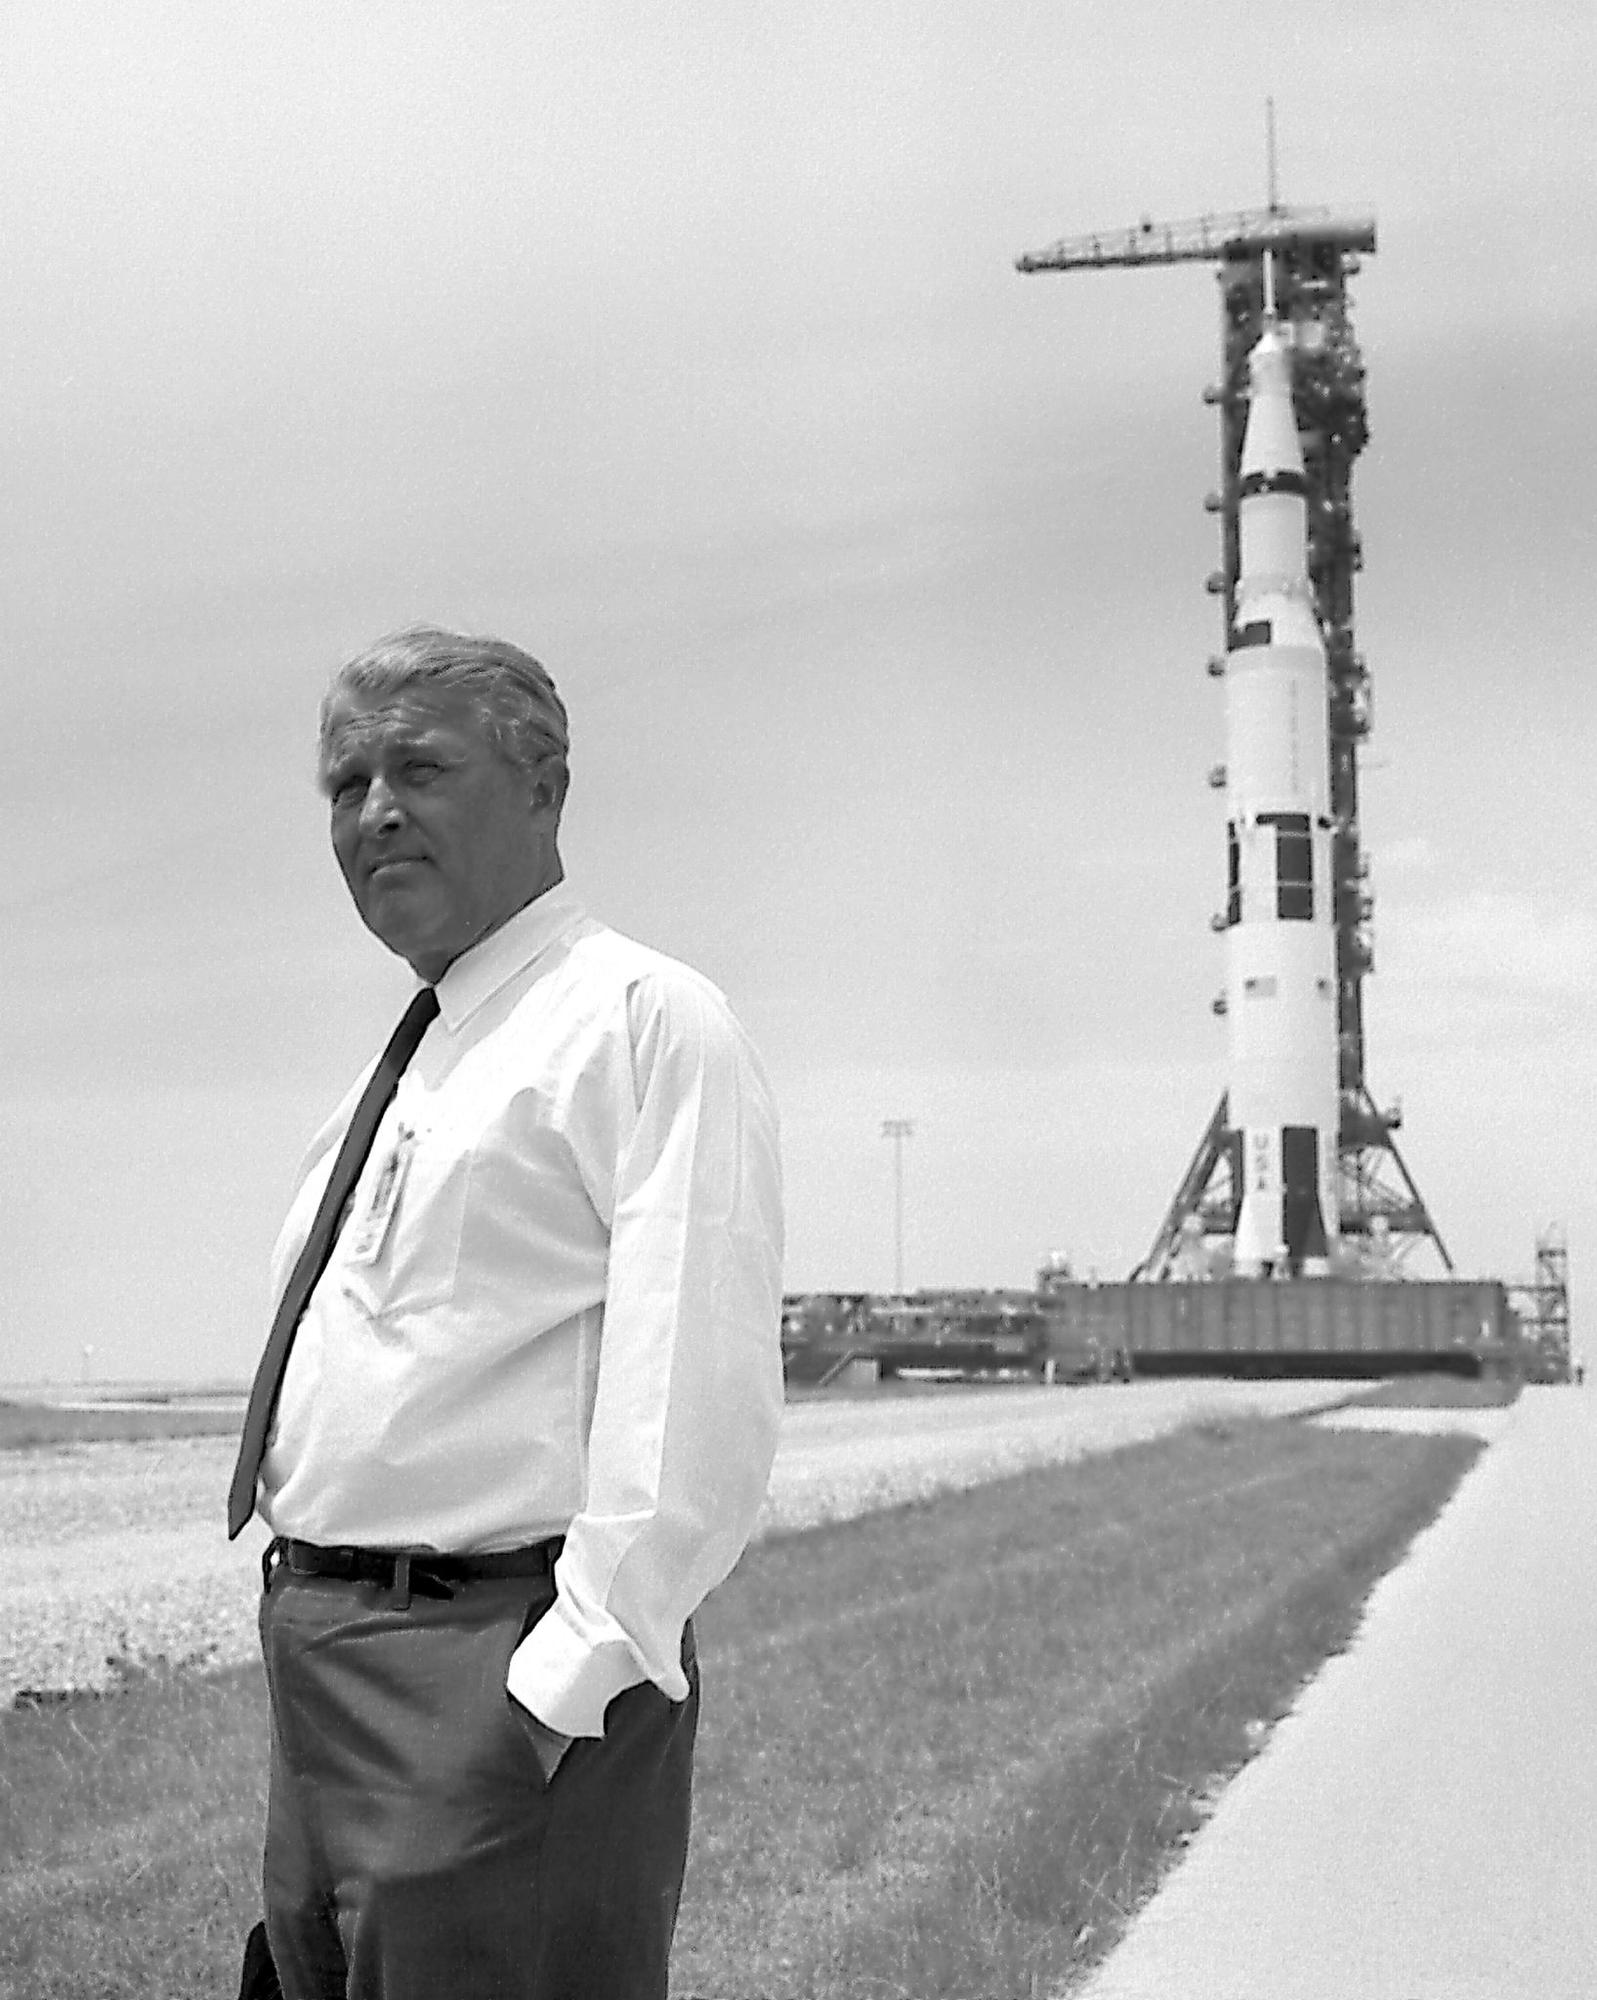 Cape Canaveral, July 1969